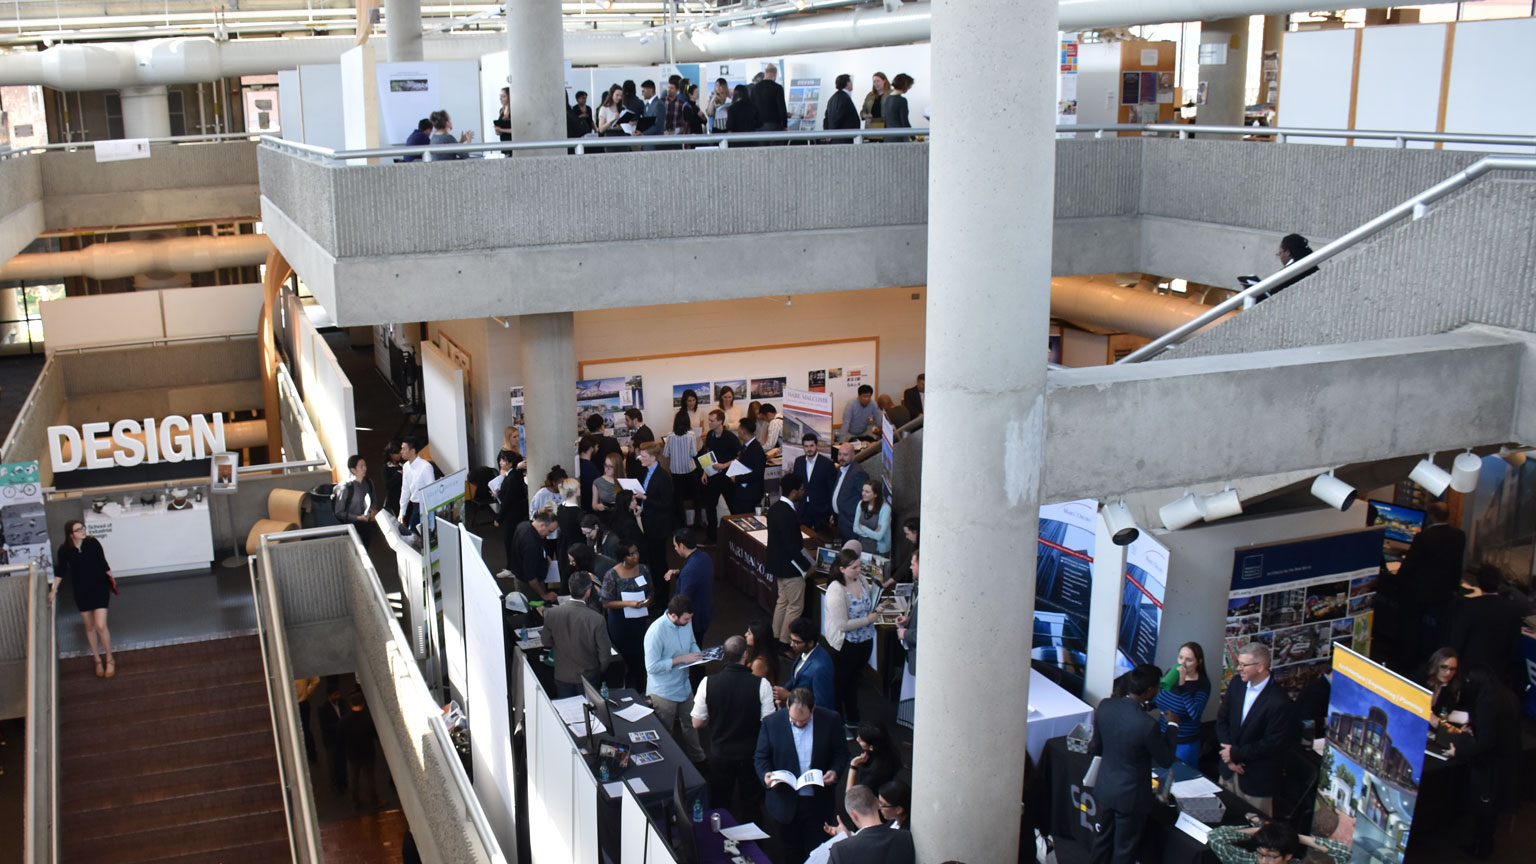 Career Fair 2018 occurring on all three levels of the Architecture West building.